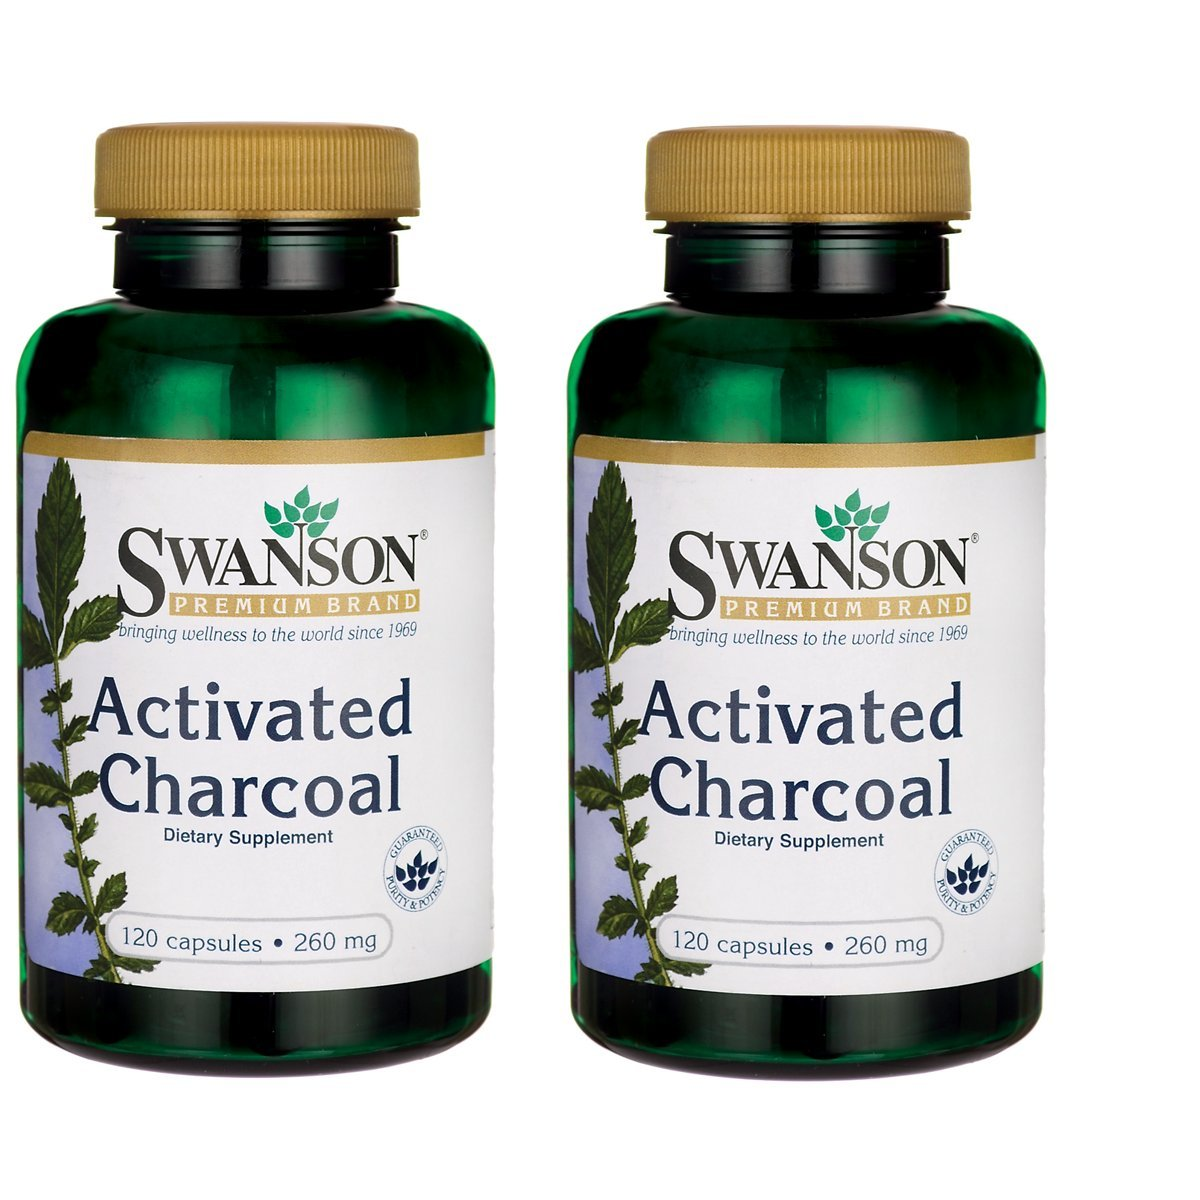 Swanson Activated Charcoal 260 Milligrams 120 Capsules 2 Pack